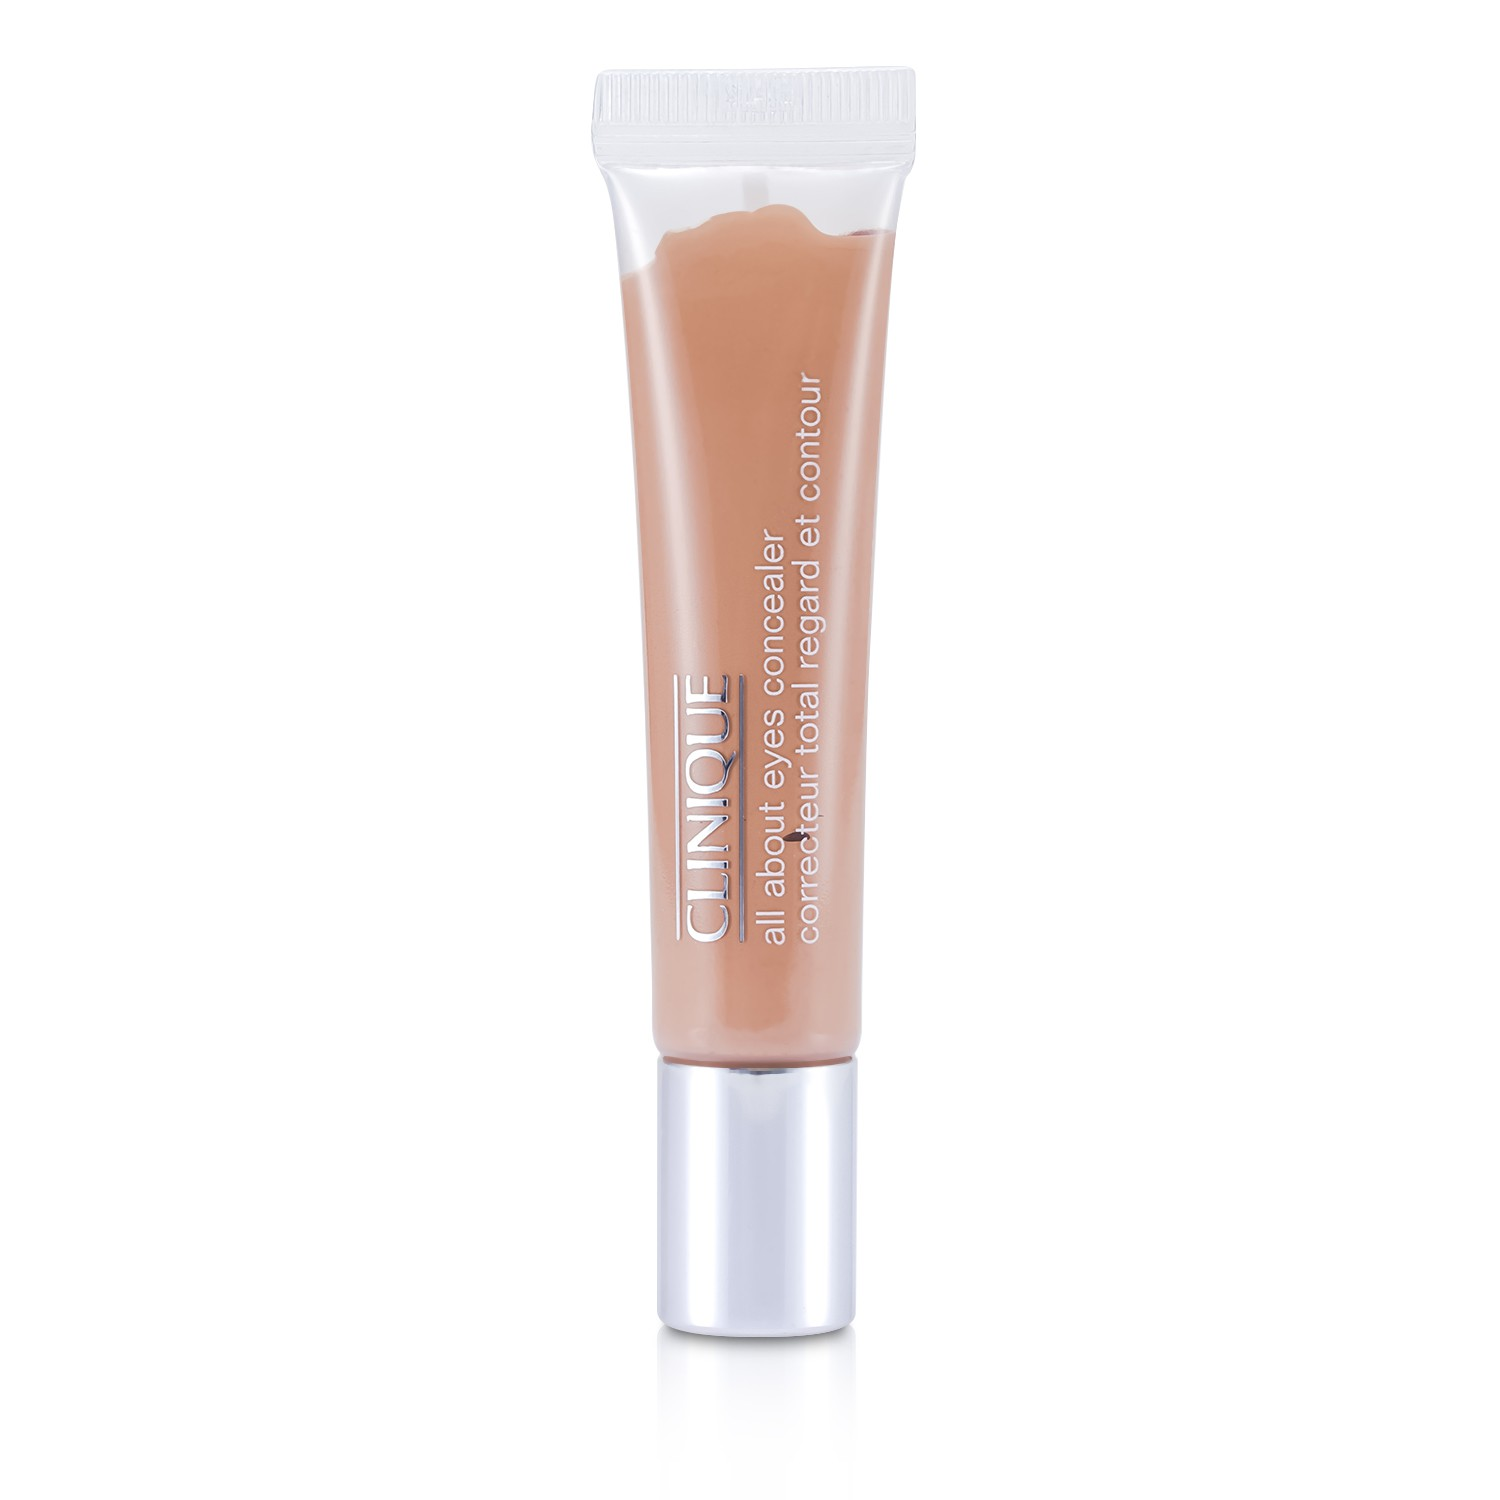 Clinique-All-About-Eyes-Concealer thumbnail 5